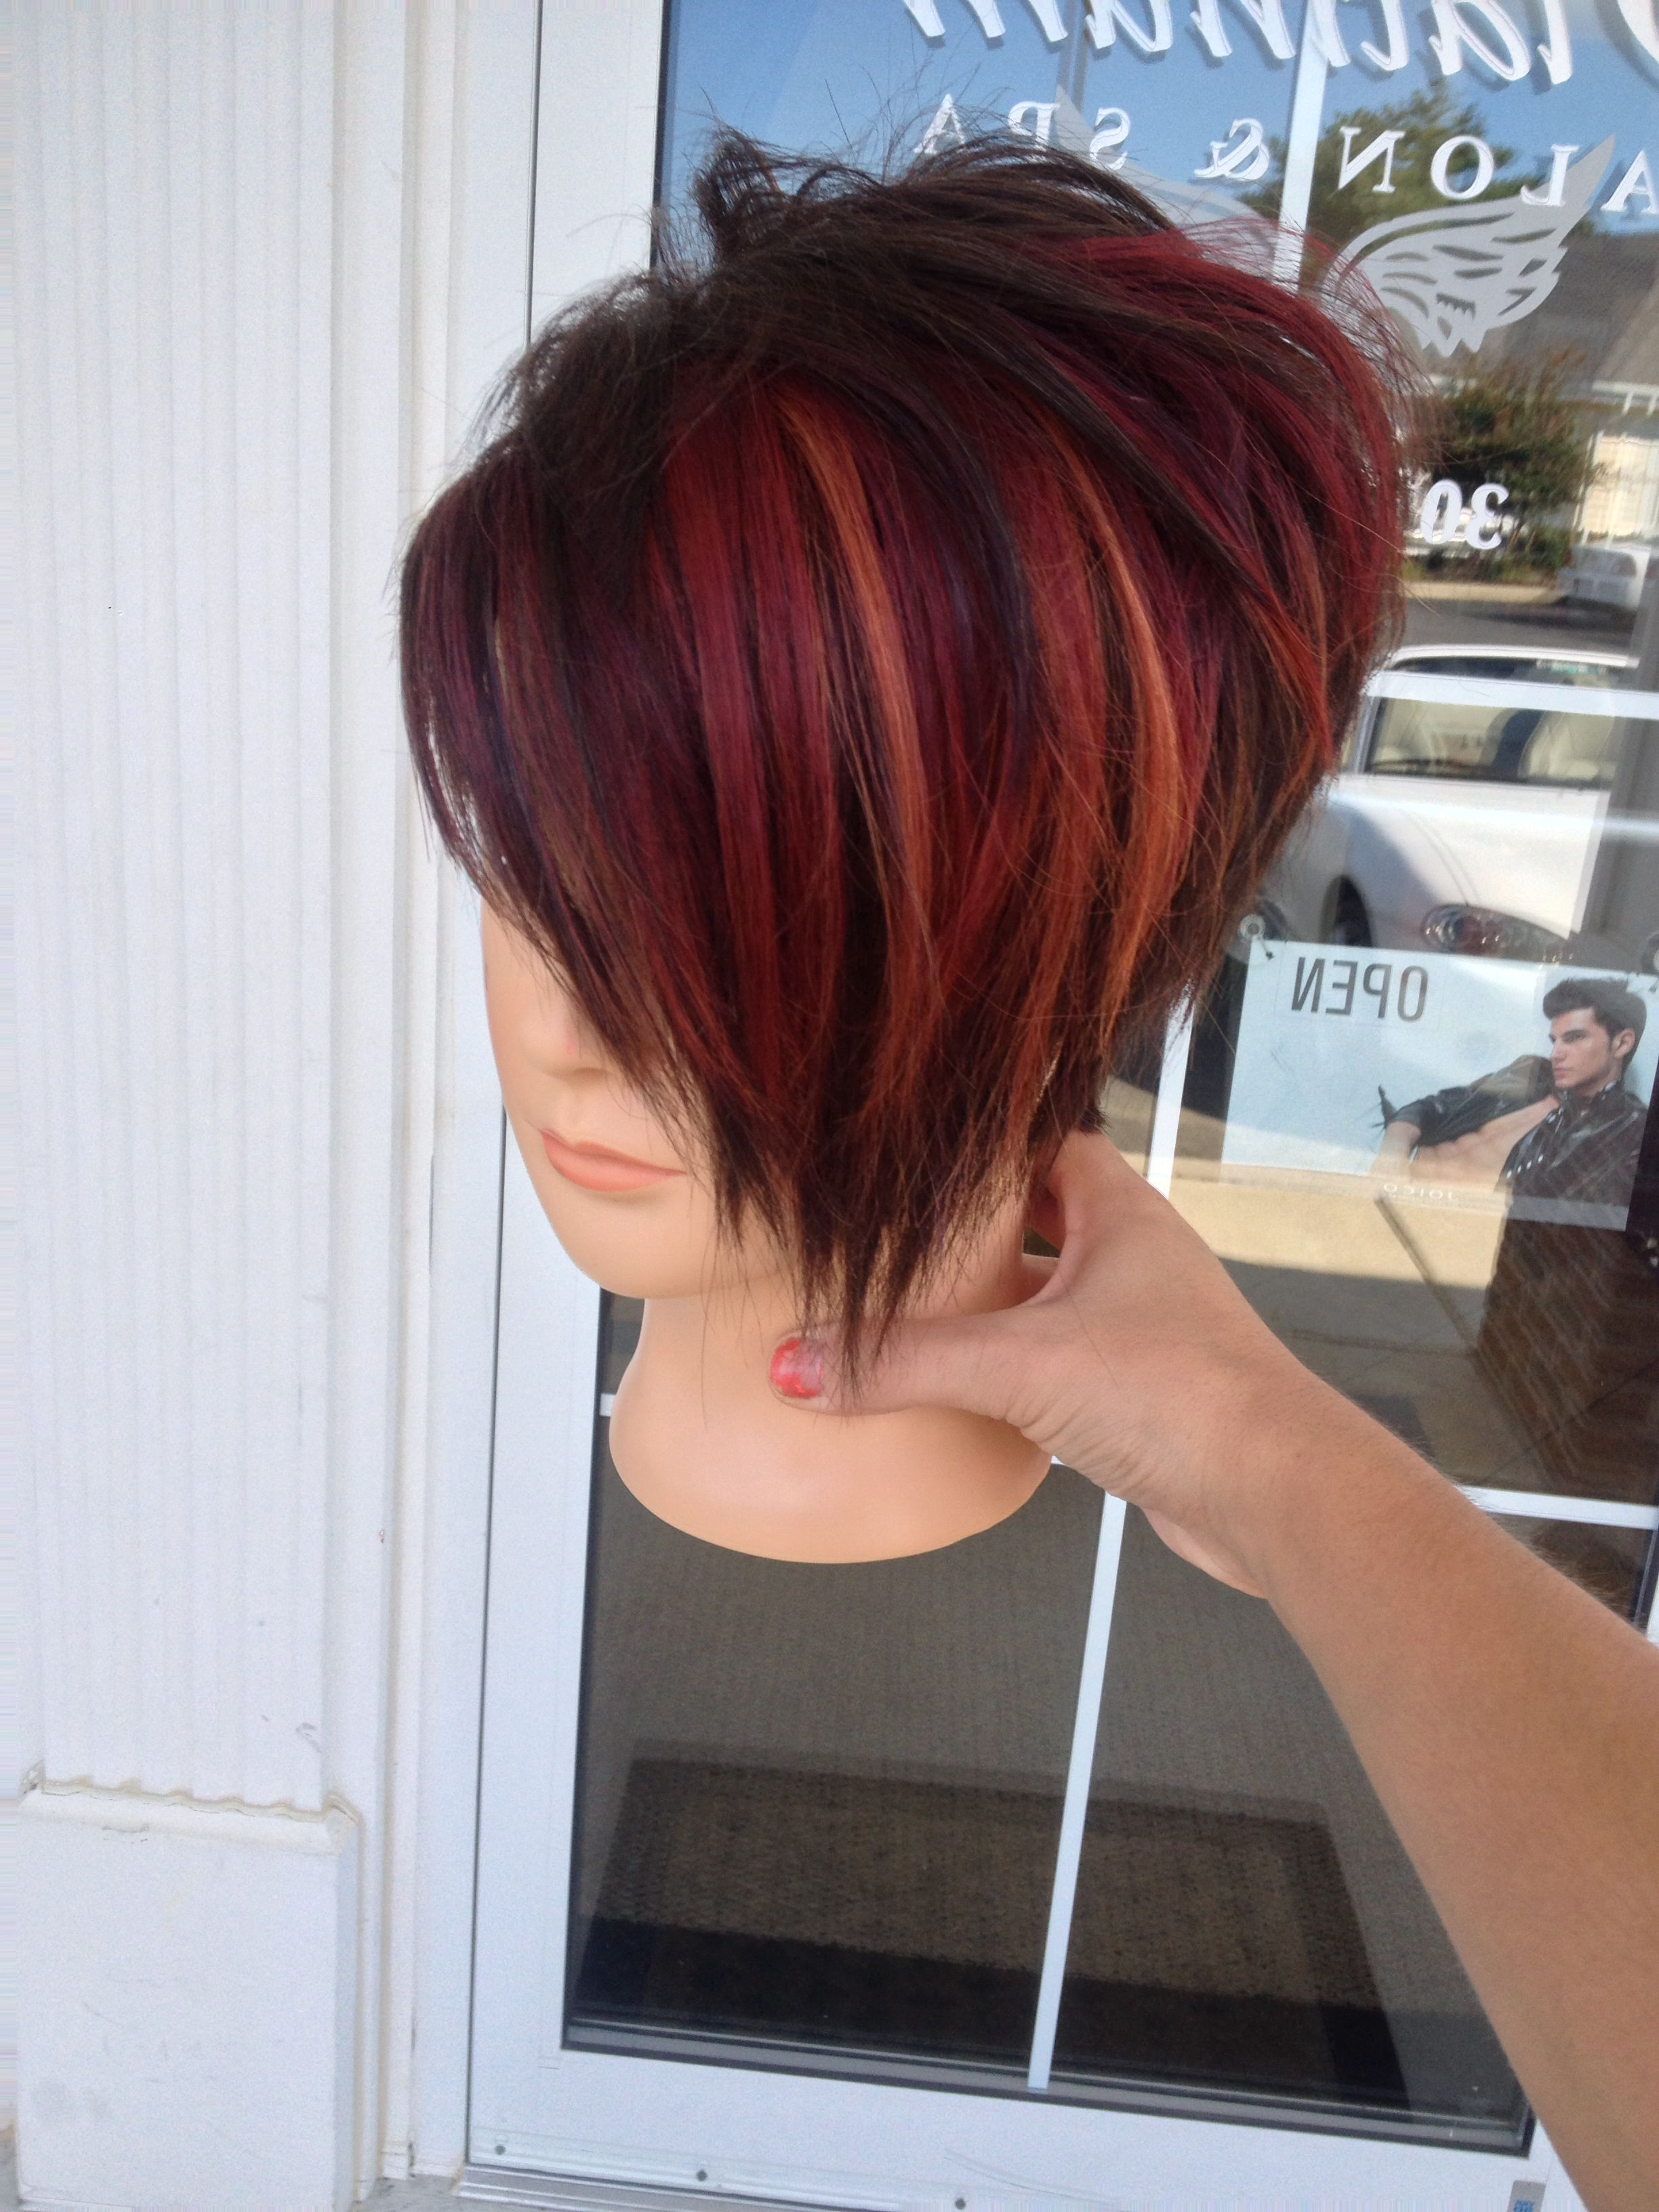 14 Cool Funky Hairstyles In 2018 | Hair | Pinterest | Hair, Hair With Regard To Sassy Short Haircuts For Thick Hair (View 1 of 25)